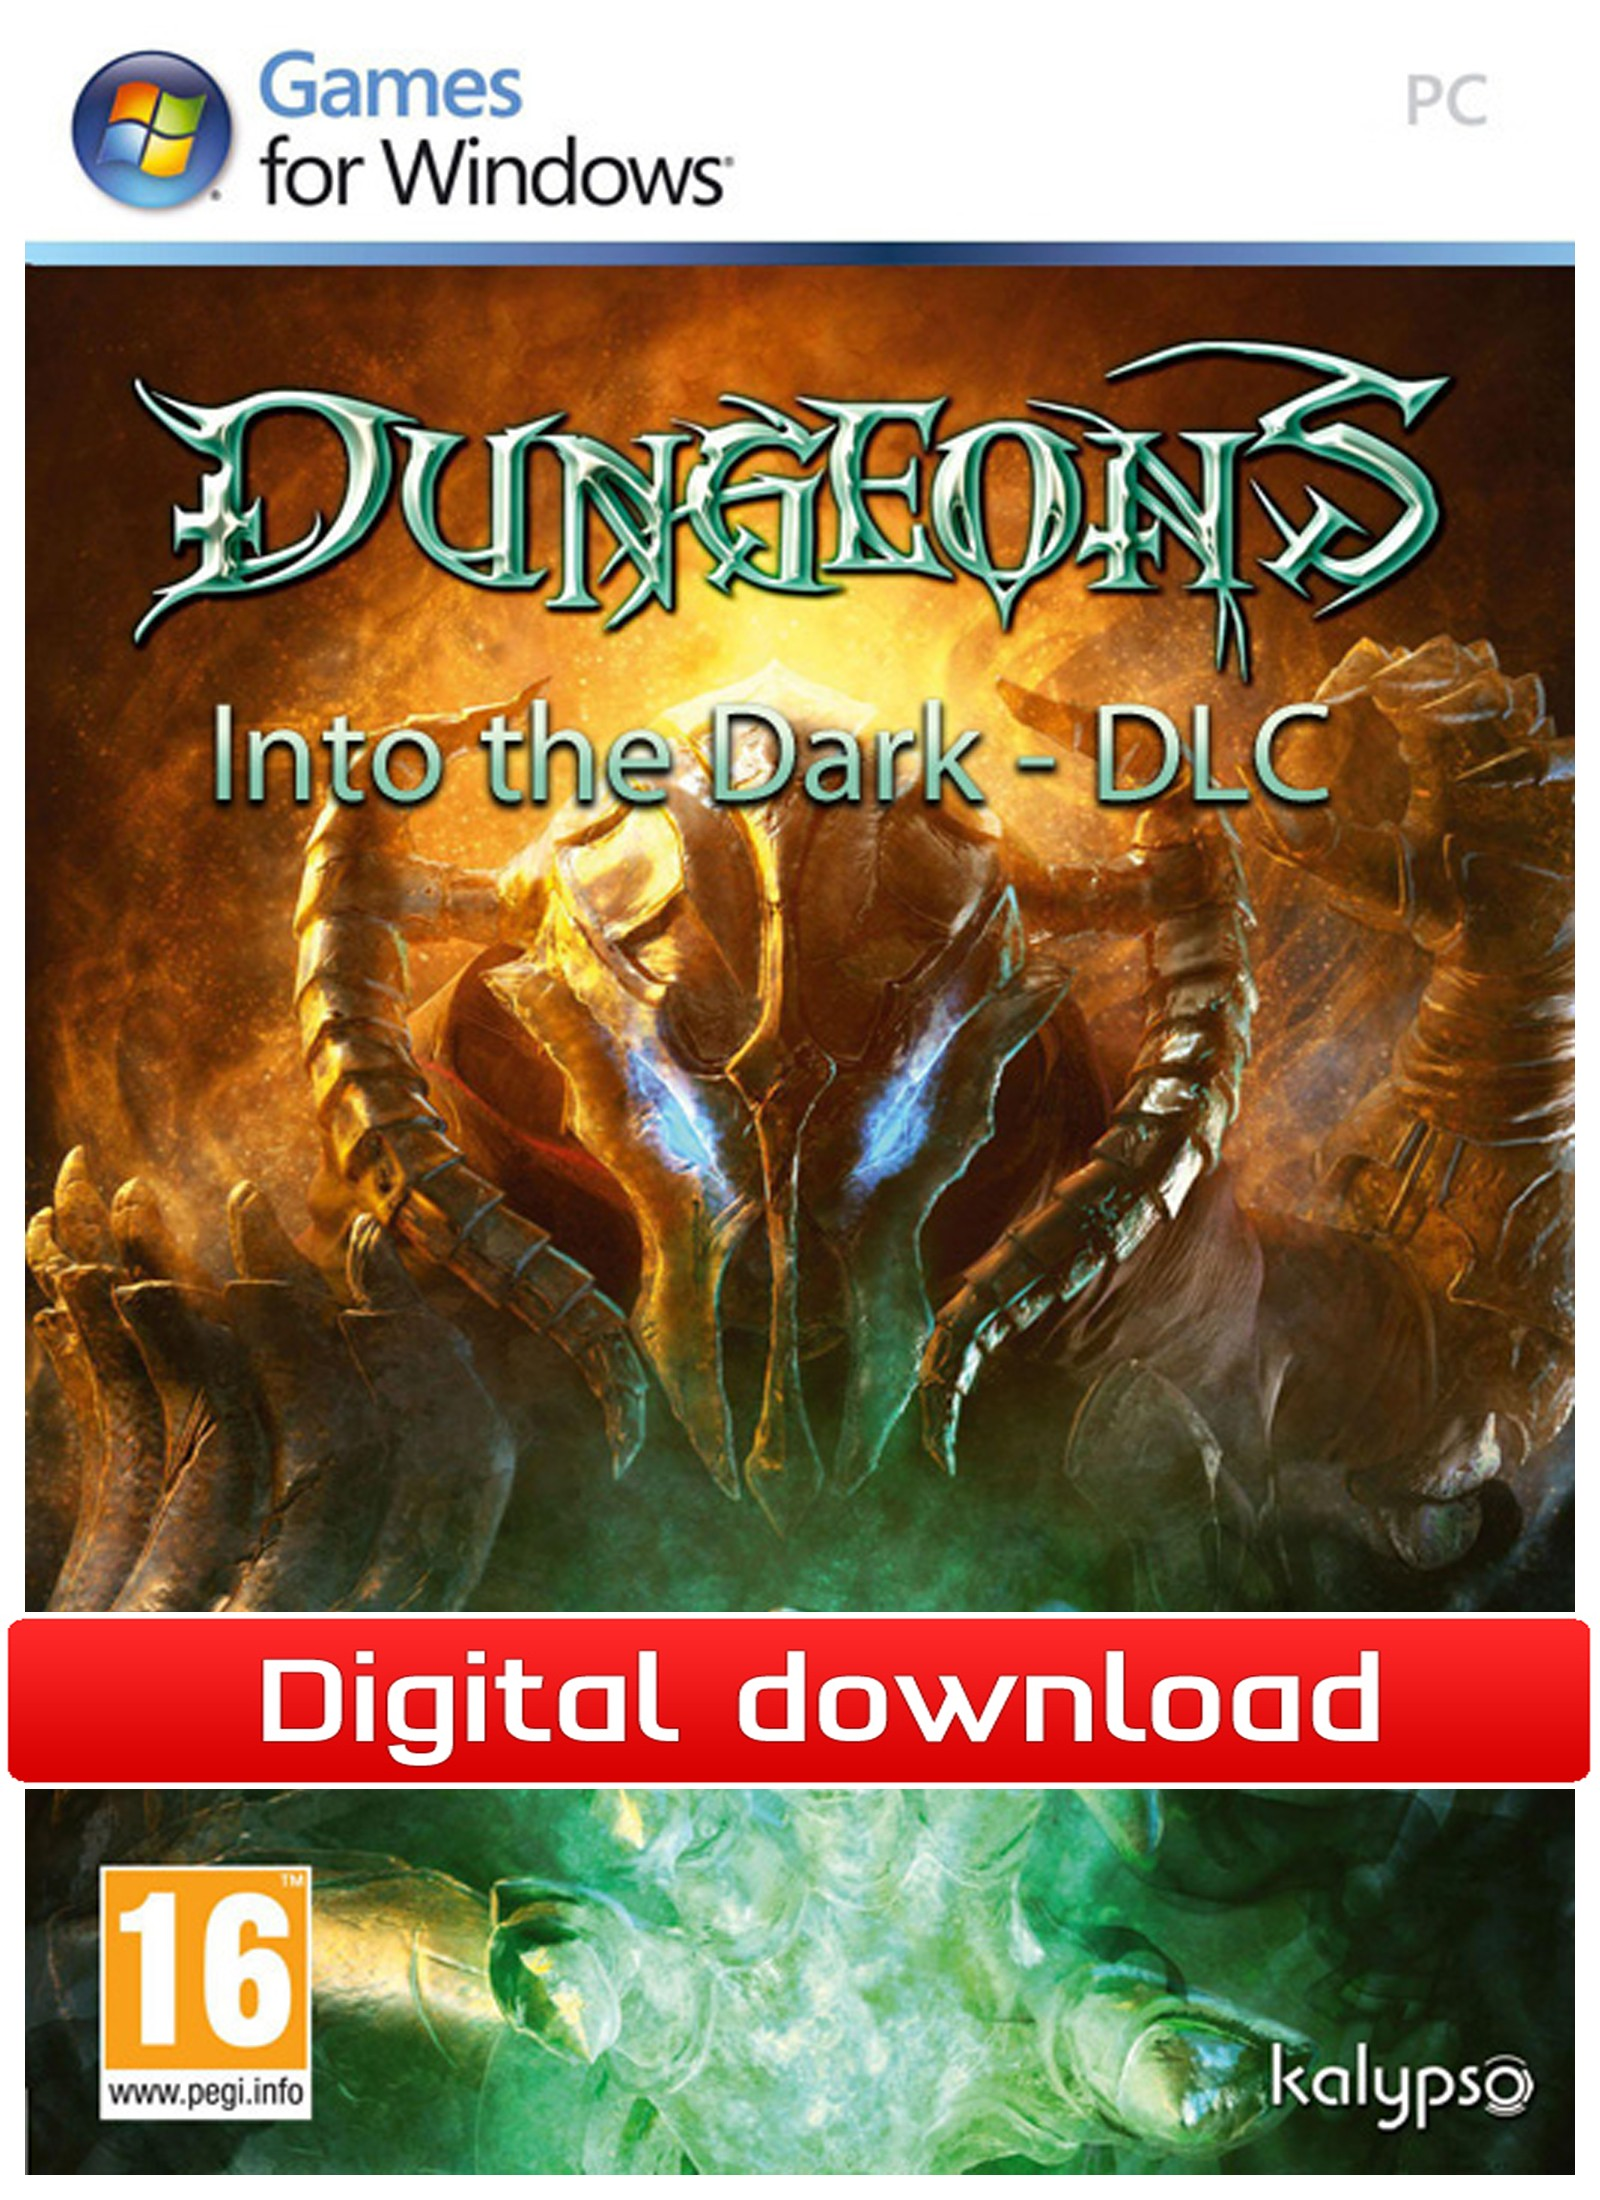 26502 : Dungeons: Into the Dark - DLC(PC nedlastning)